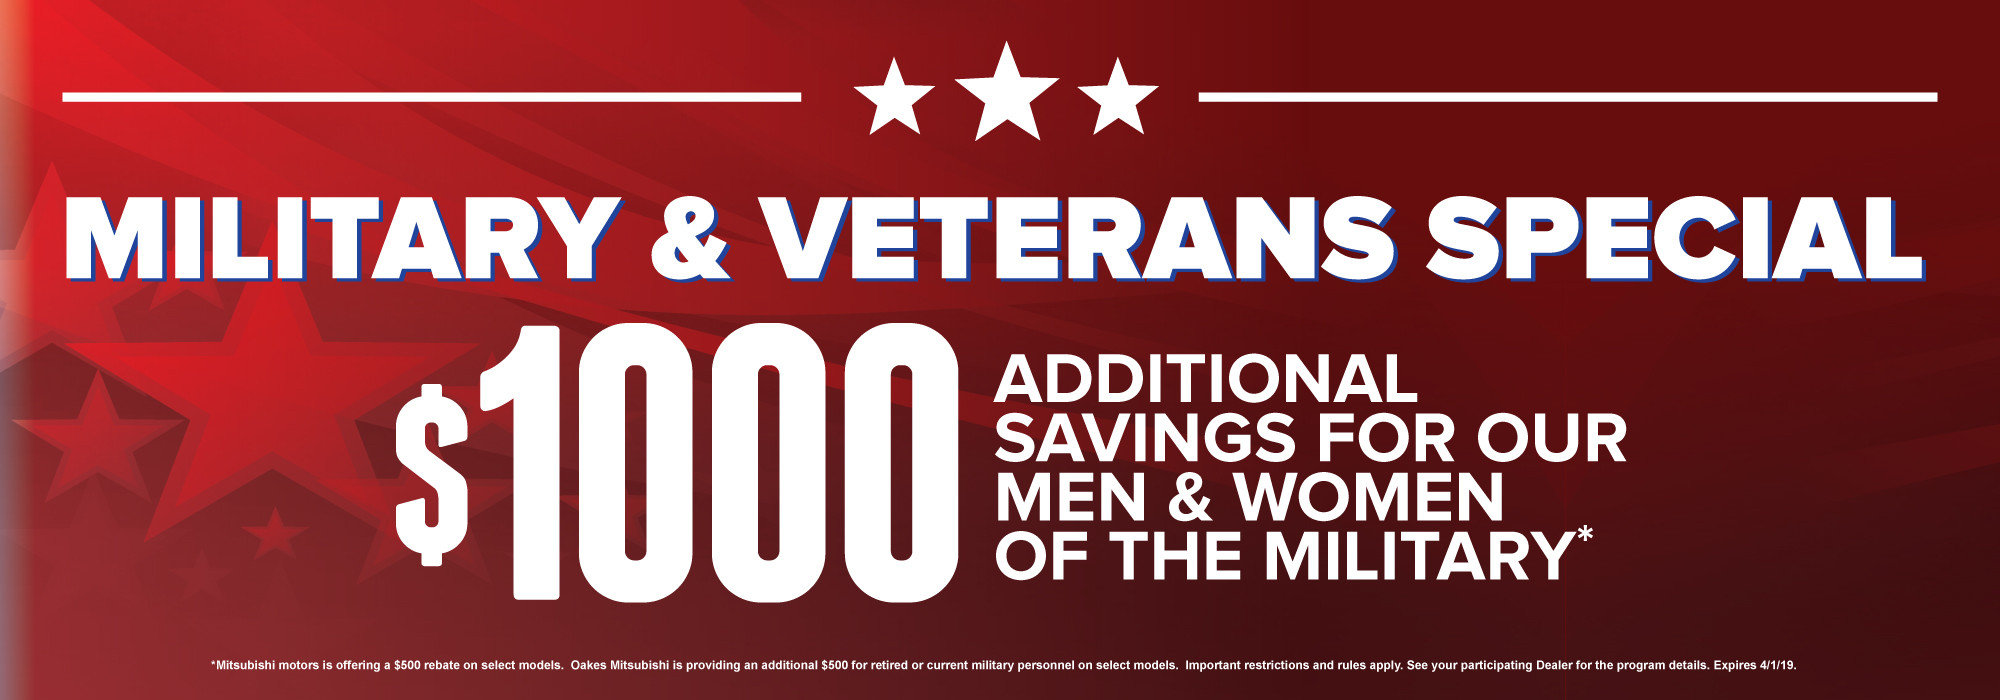 Military & Veterans Special